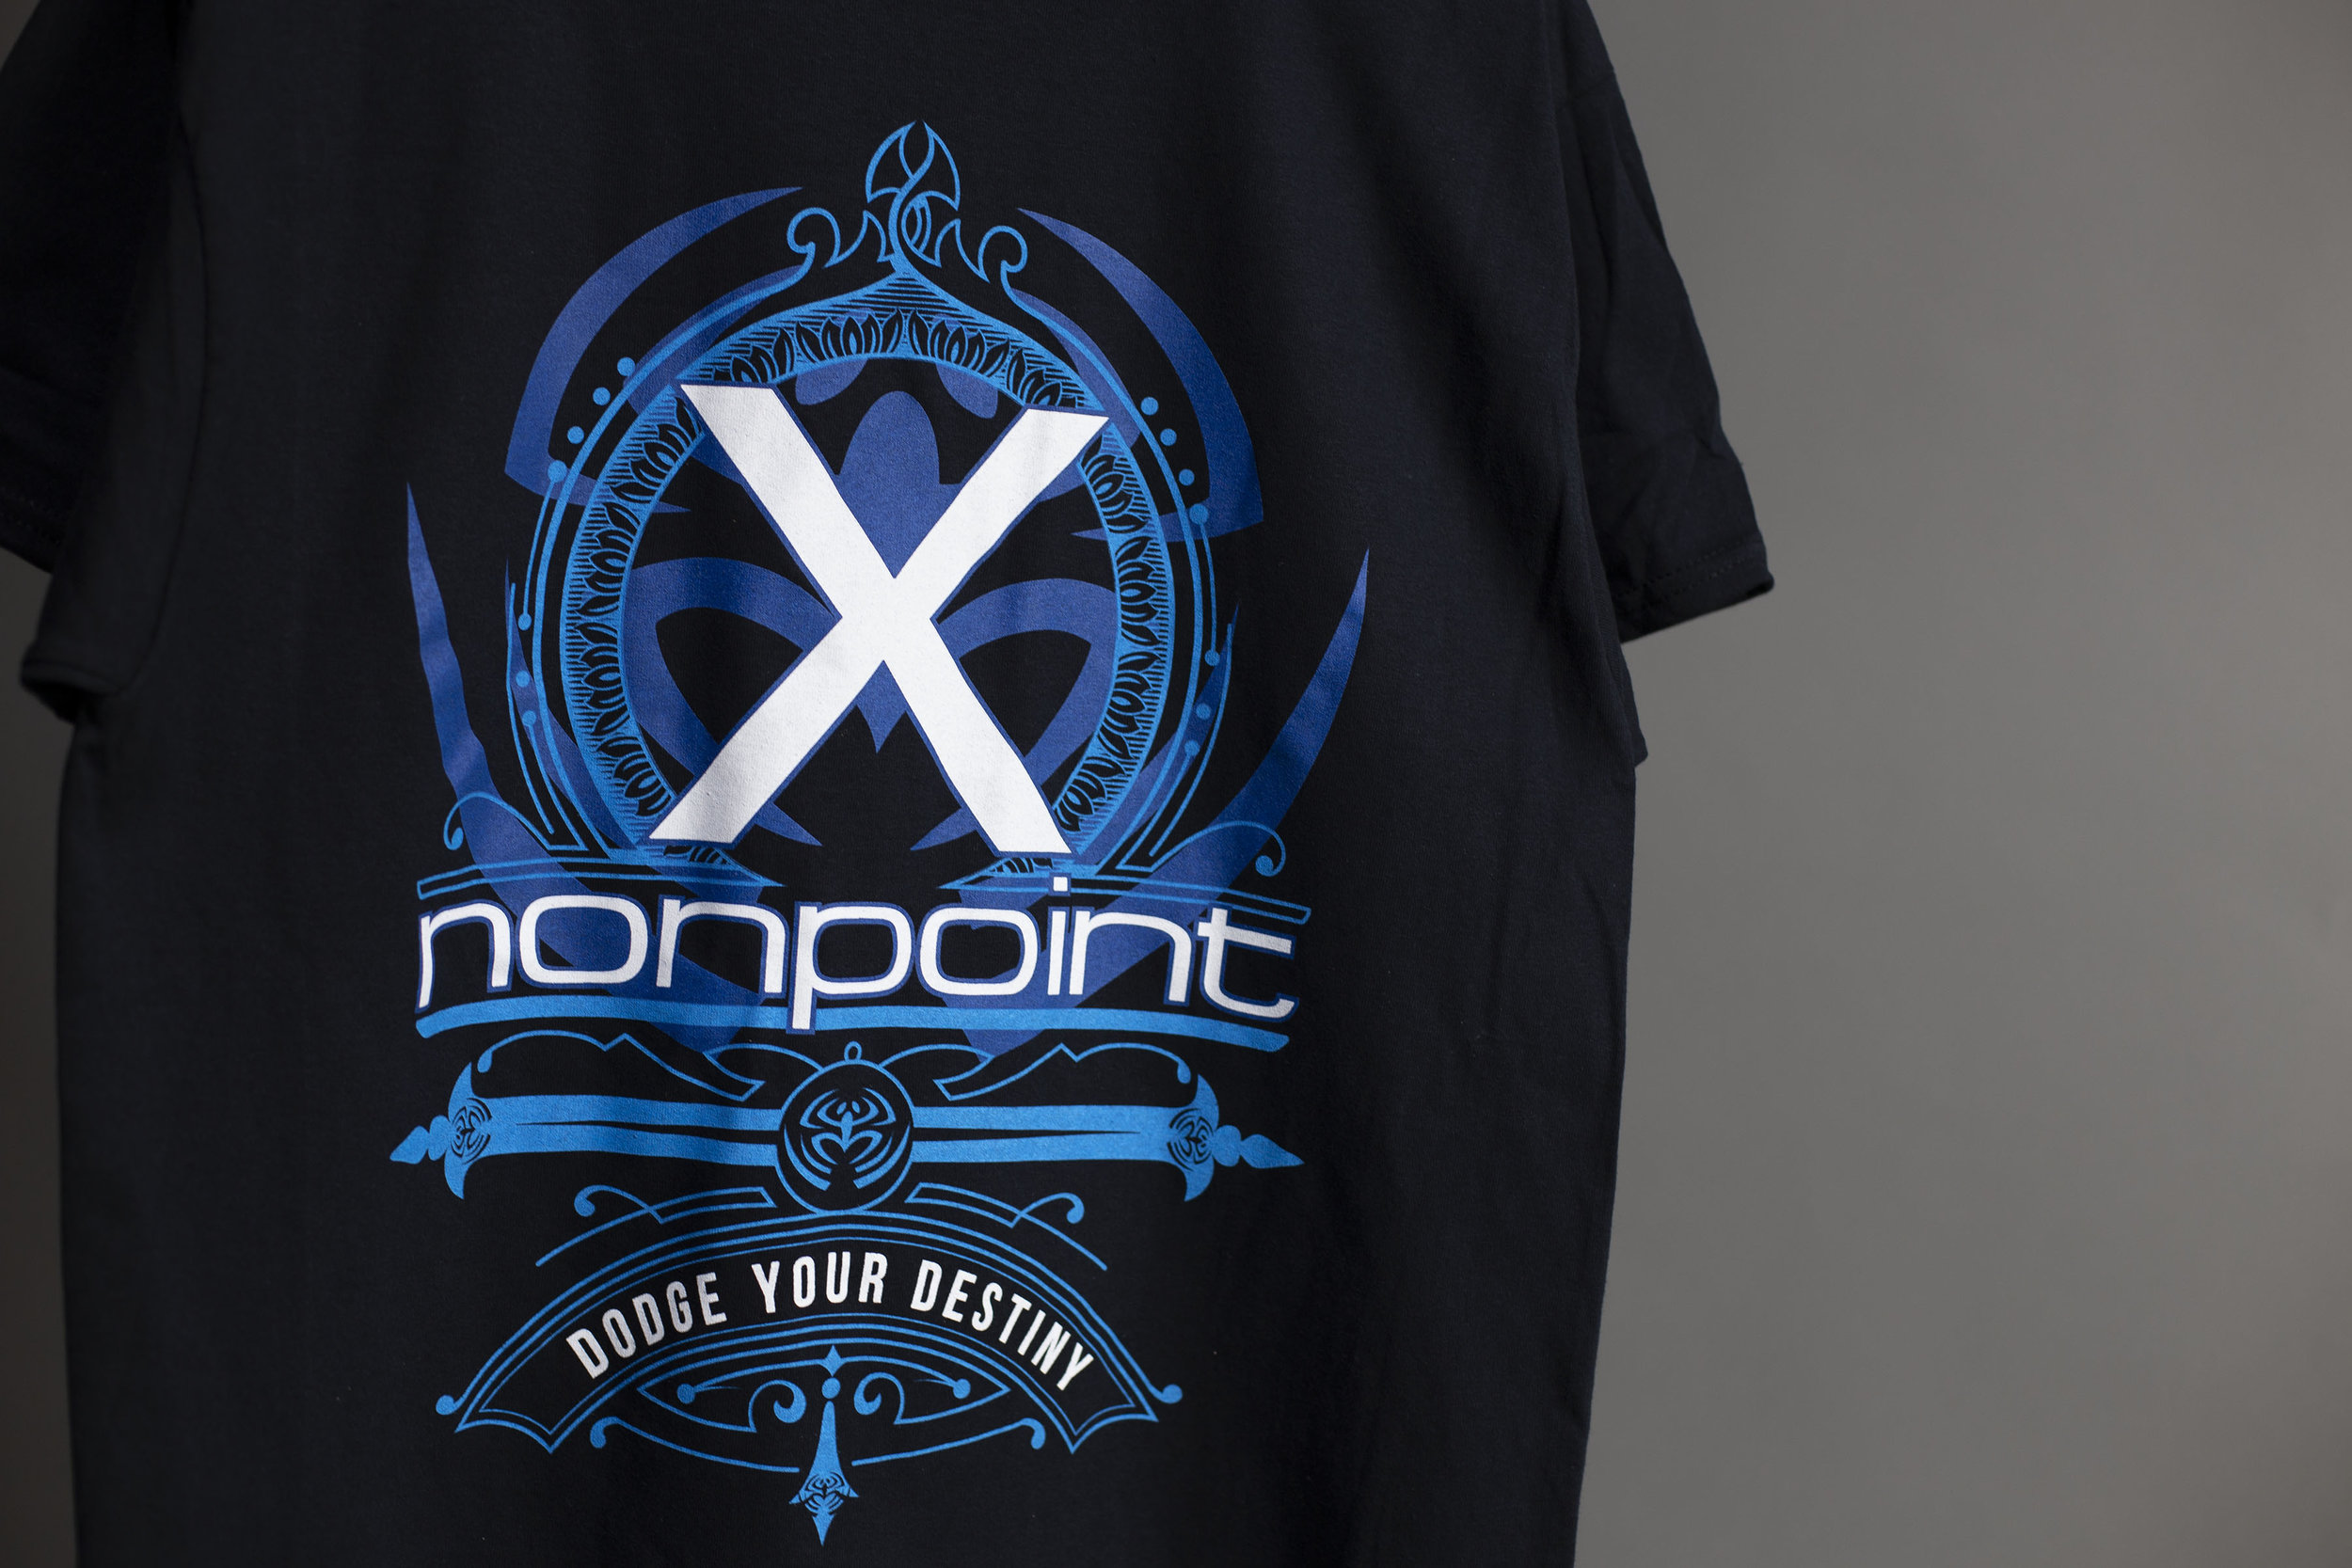 Lucas caught up with Elias from Nonpoint to talk about merchandise and how influential it can be to musicians and touring.  [Merch] is probably one of the most valuable keys to our tour package - without it theres no point to us being out.""